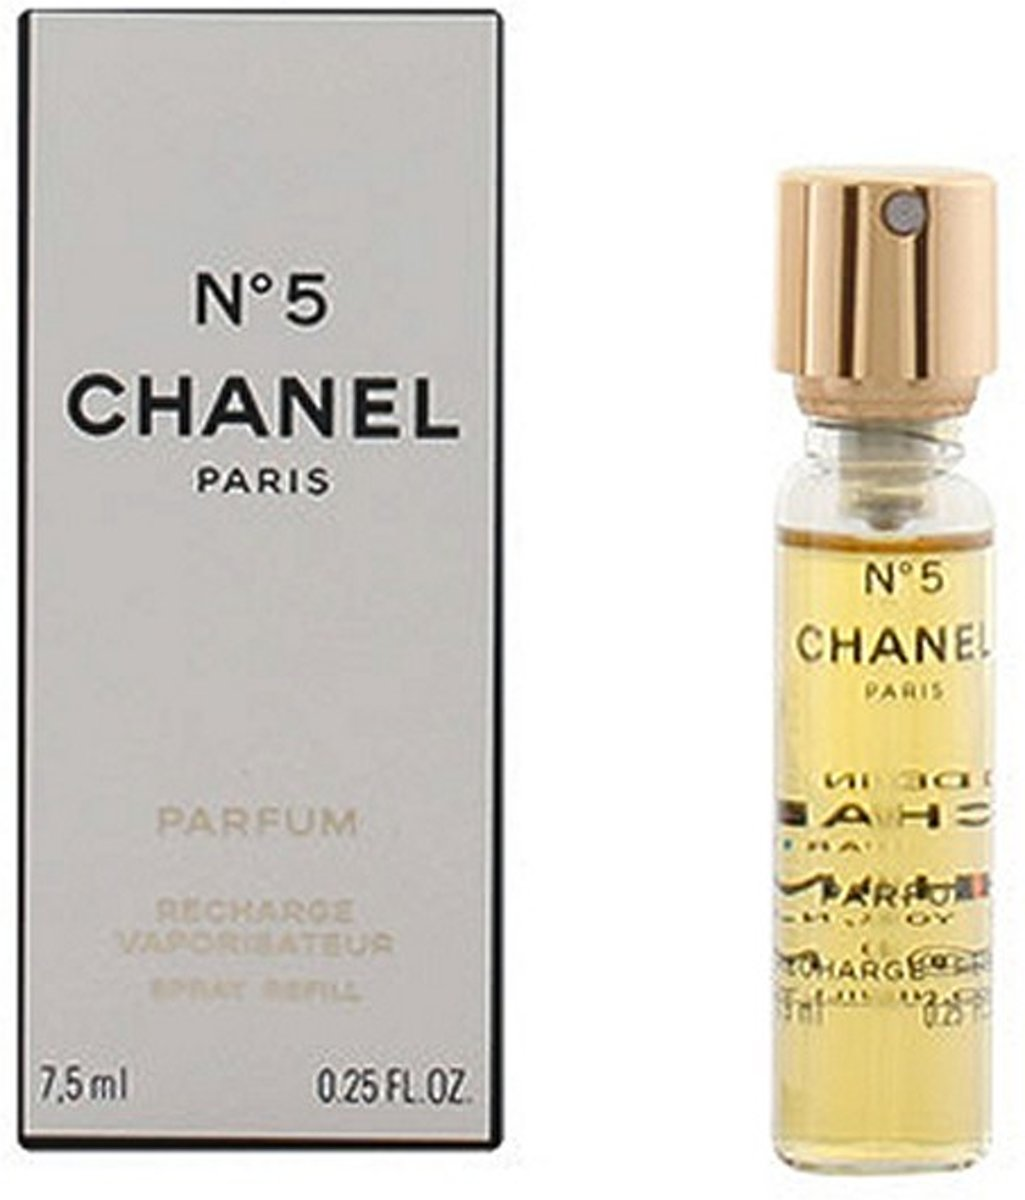 chanel n 5 recharge vaporisateur parfum 7 5 ml. Black Bedroom Furniture Sets. Home Design Ideas